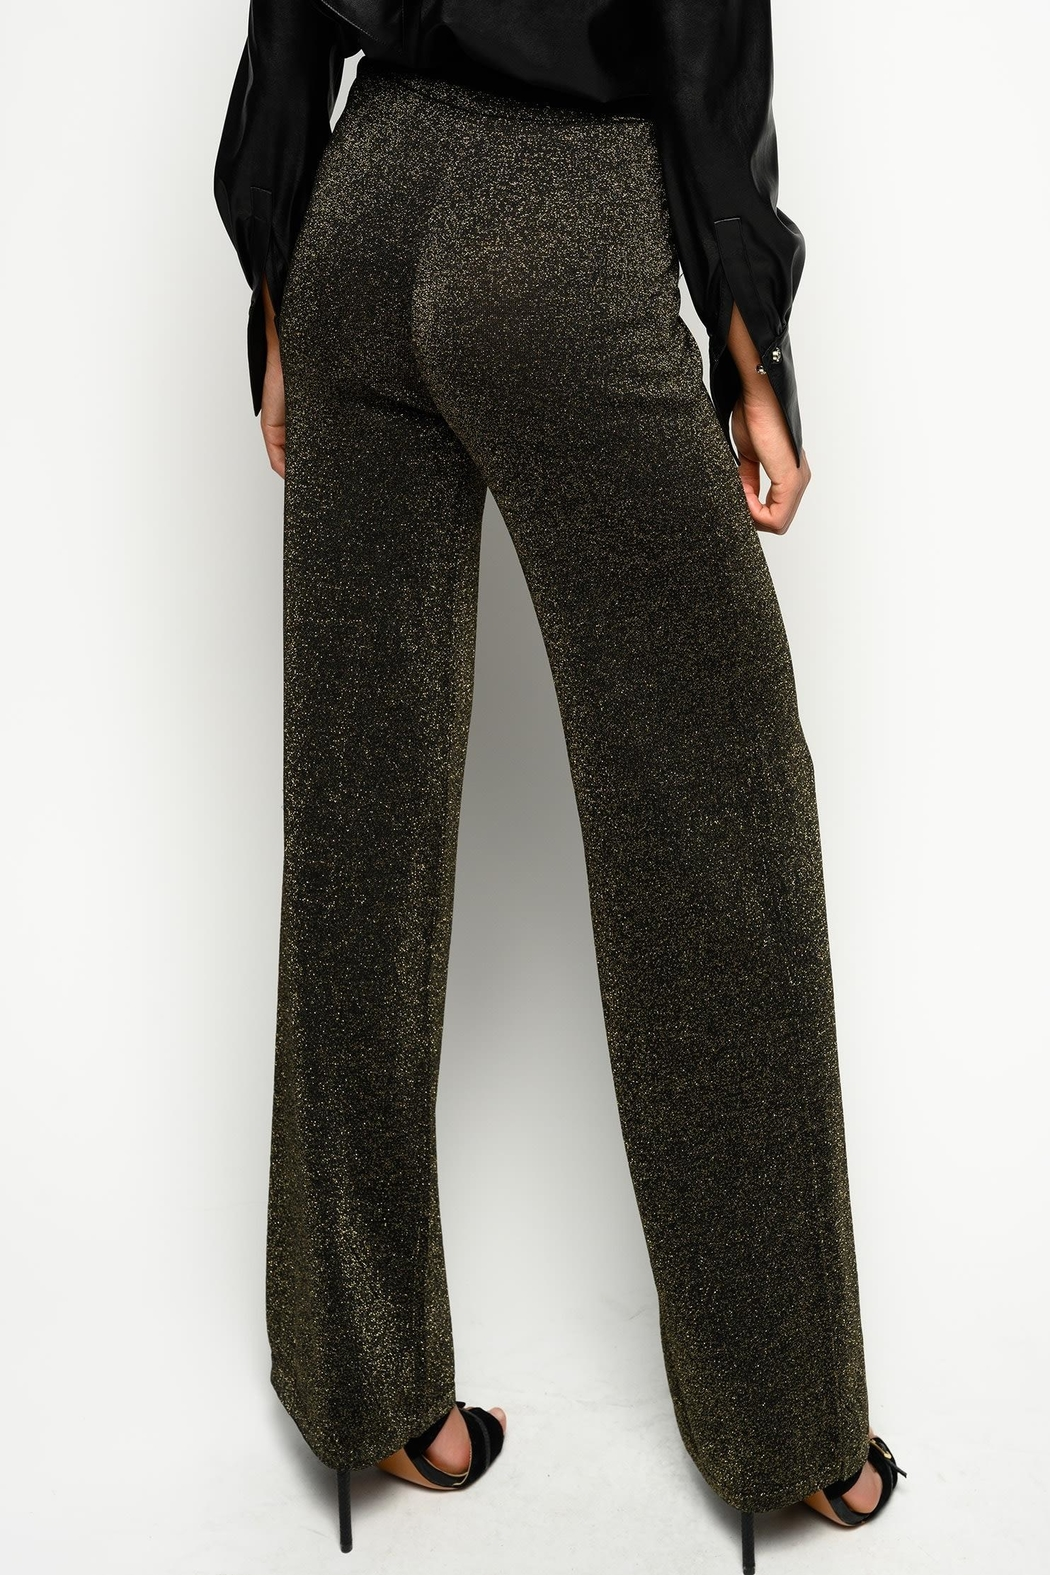 Pinko Canada Lurex Knit Trousers Gold - Side Cropped Image